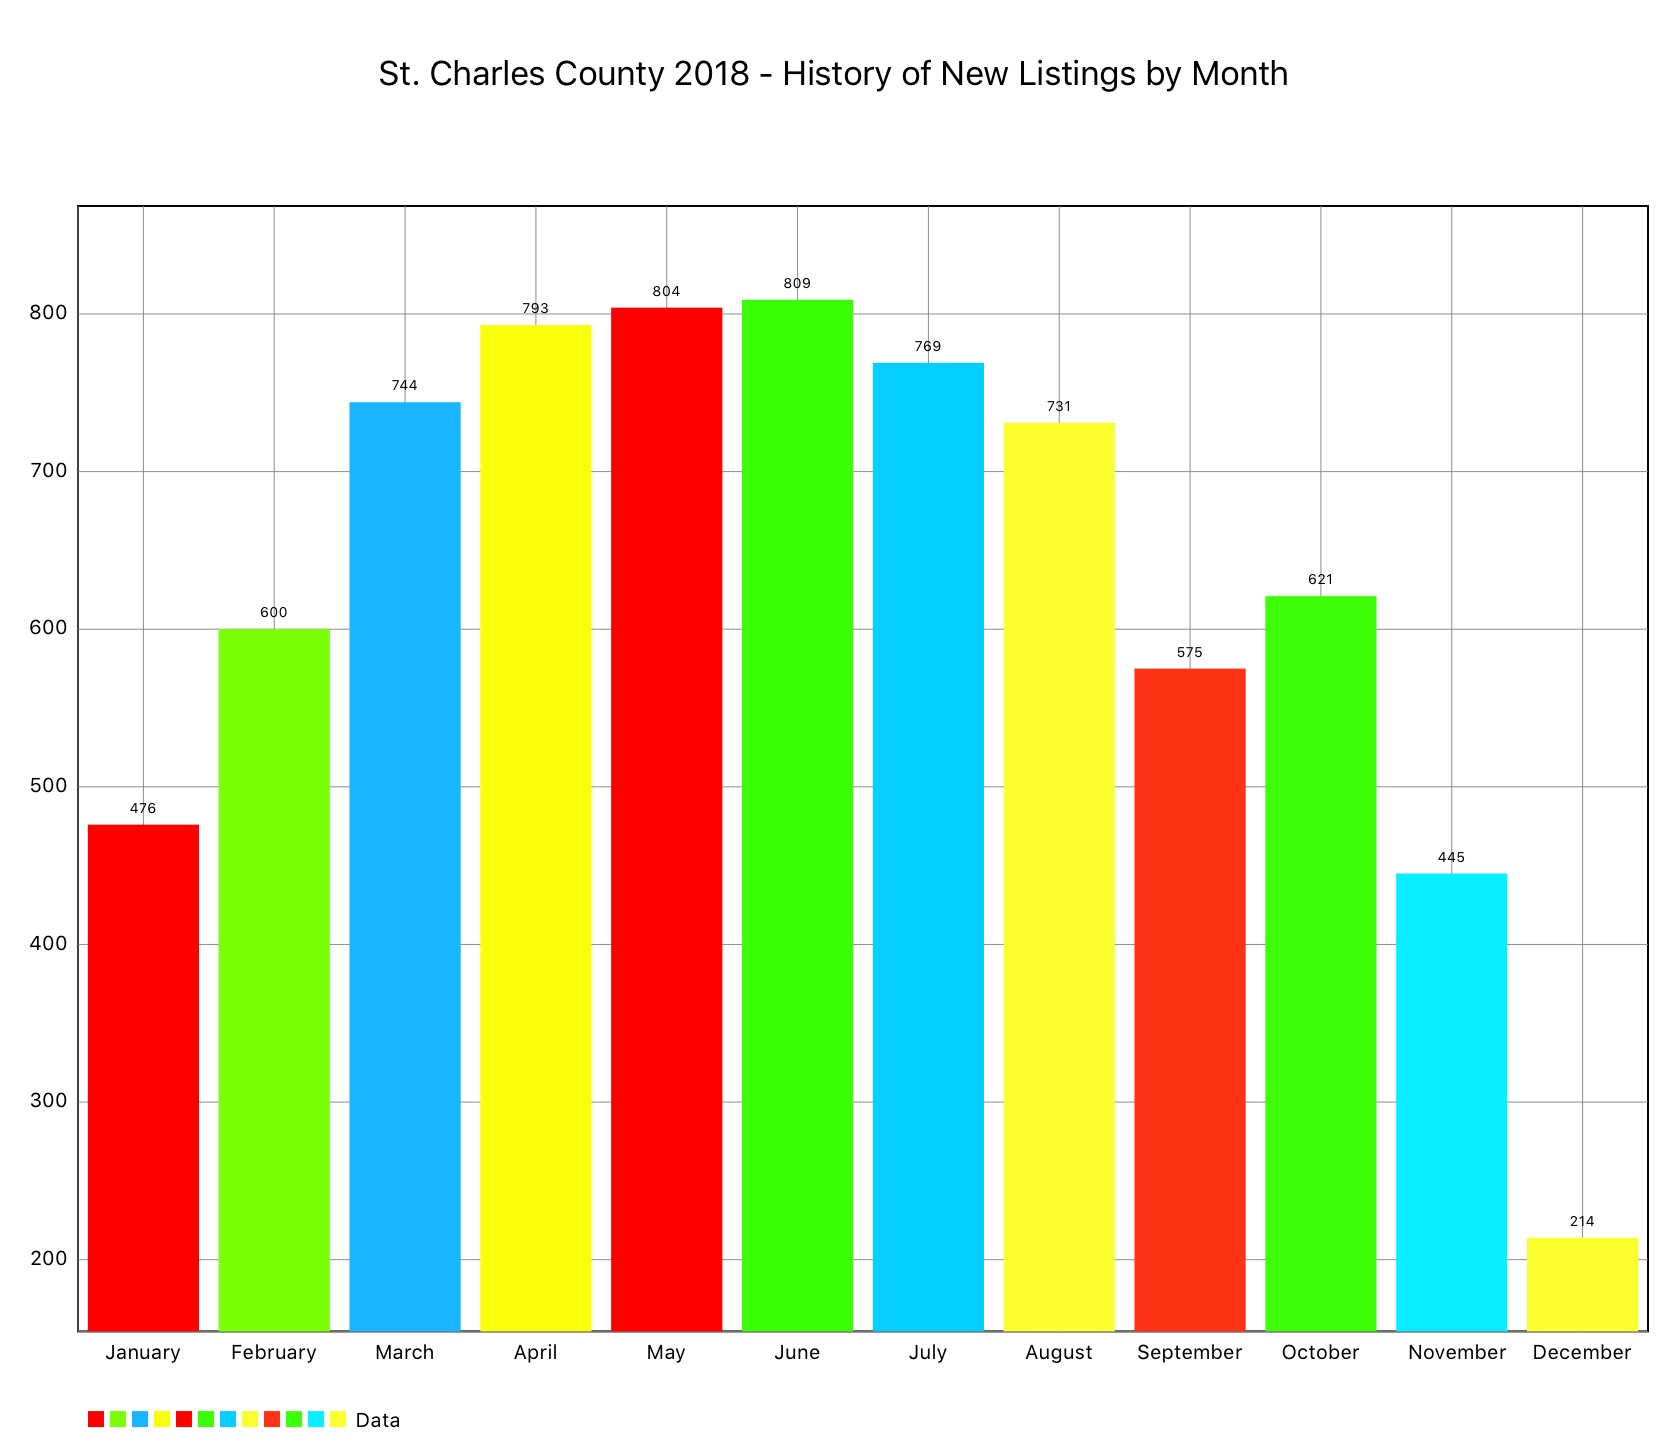 st charles county new listings per month 2018